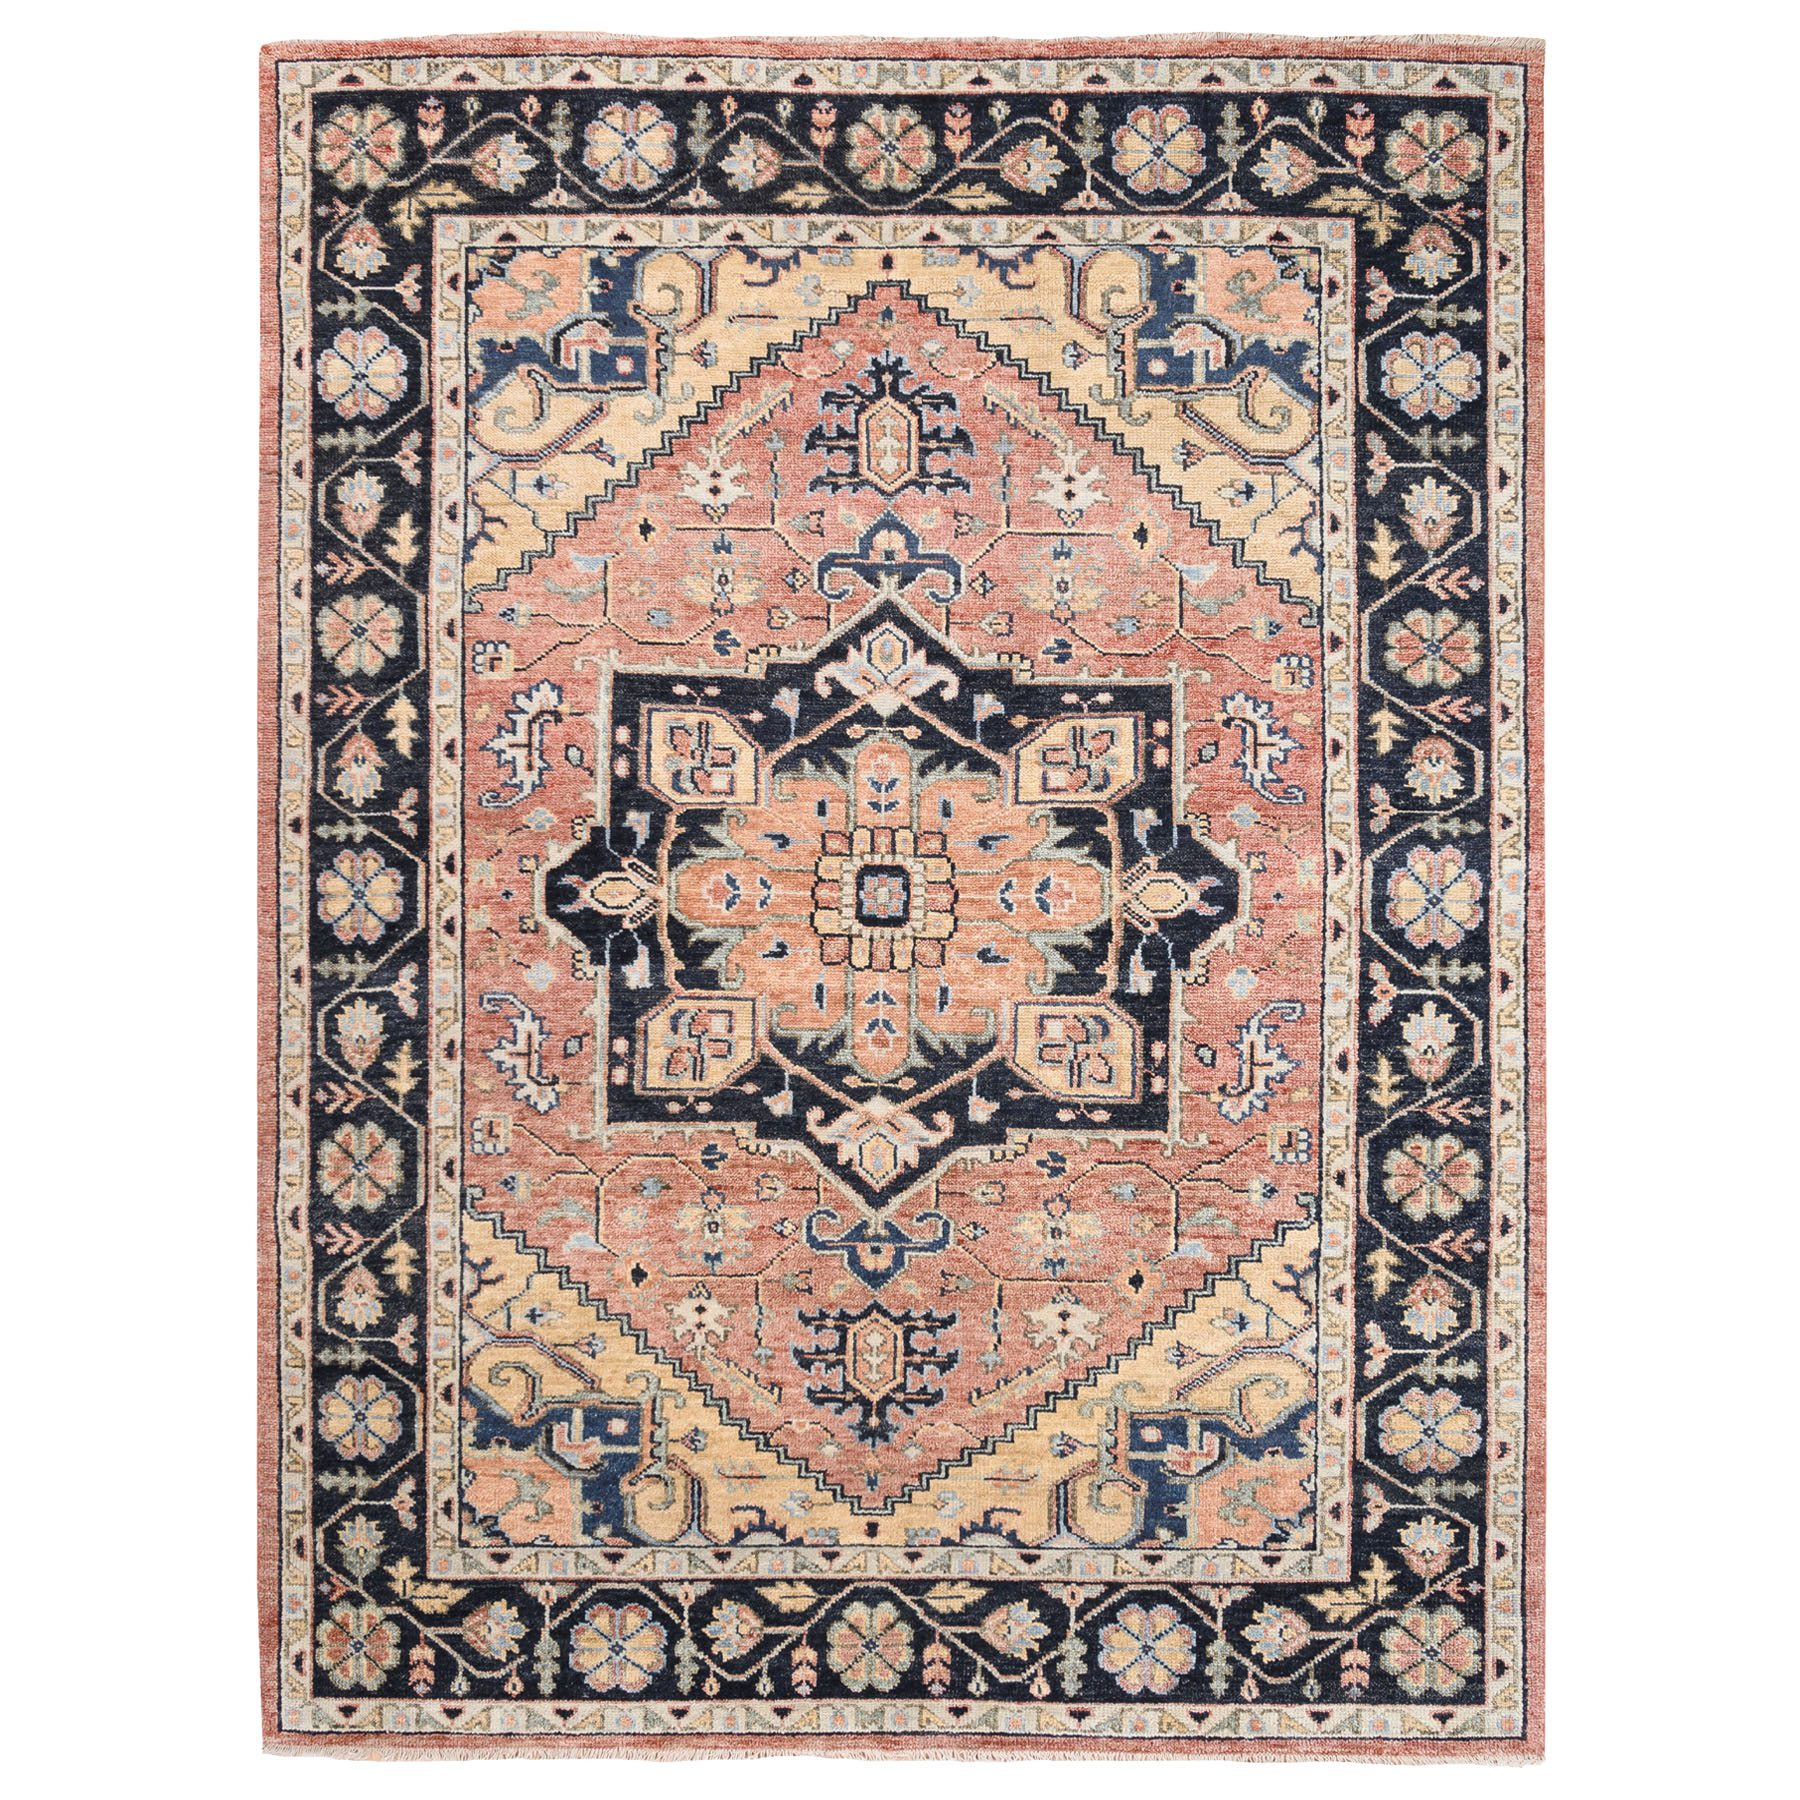 9'x12' Coral Supple Collection Heriz Design Hand Knotted Organic Wool Oriental Rug